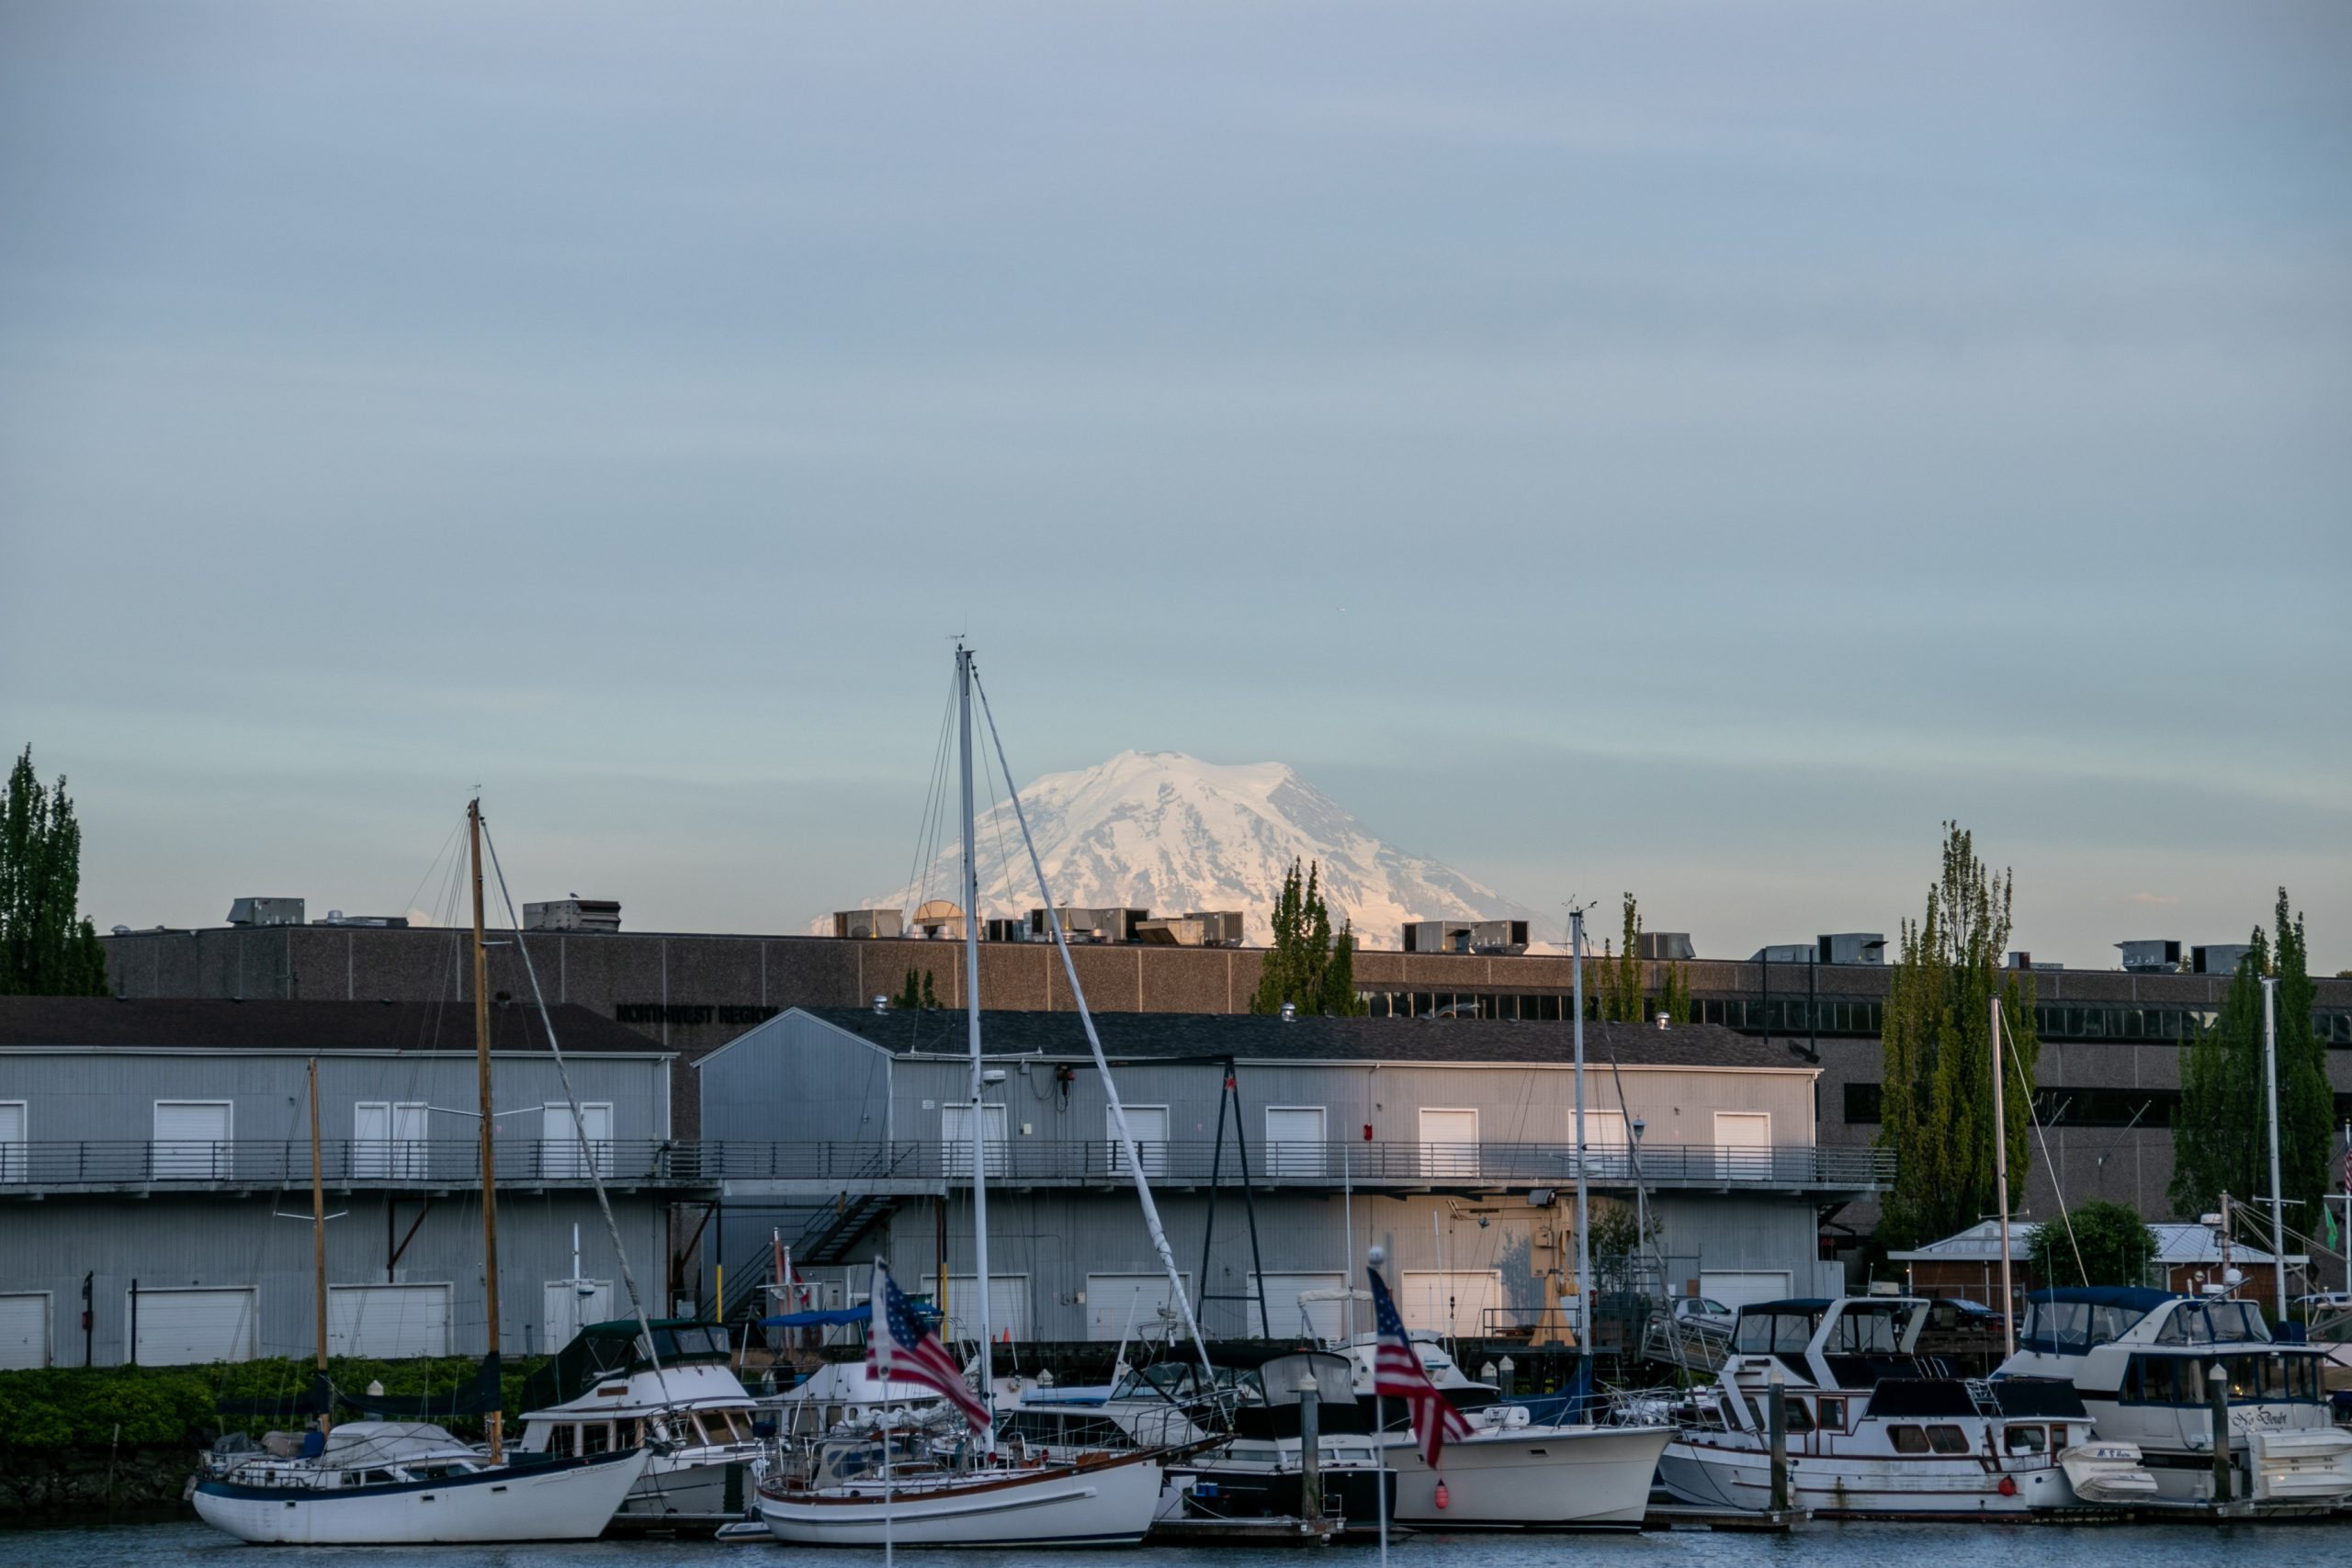 Snow Capped Mountain Behind Boats In Harbor